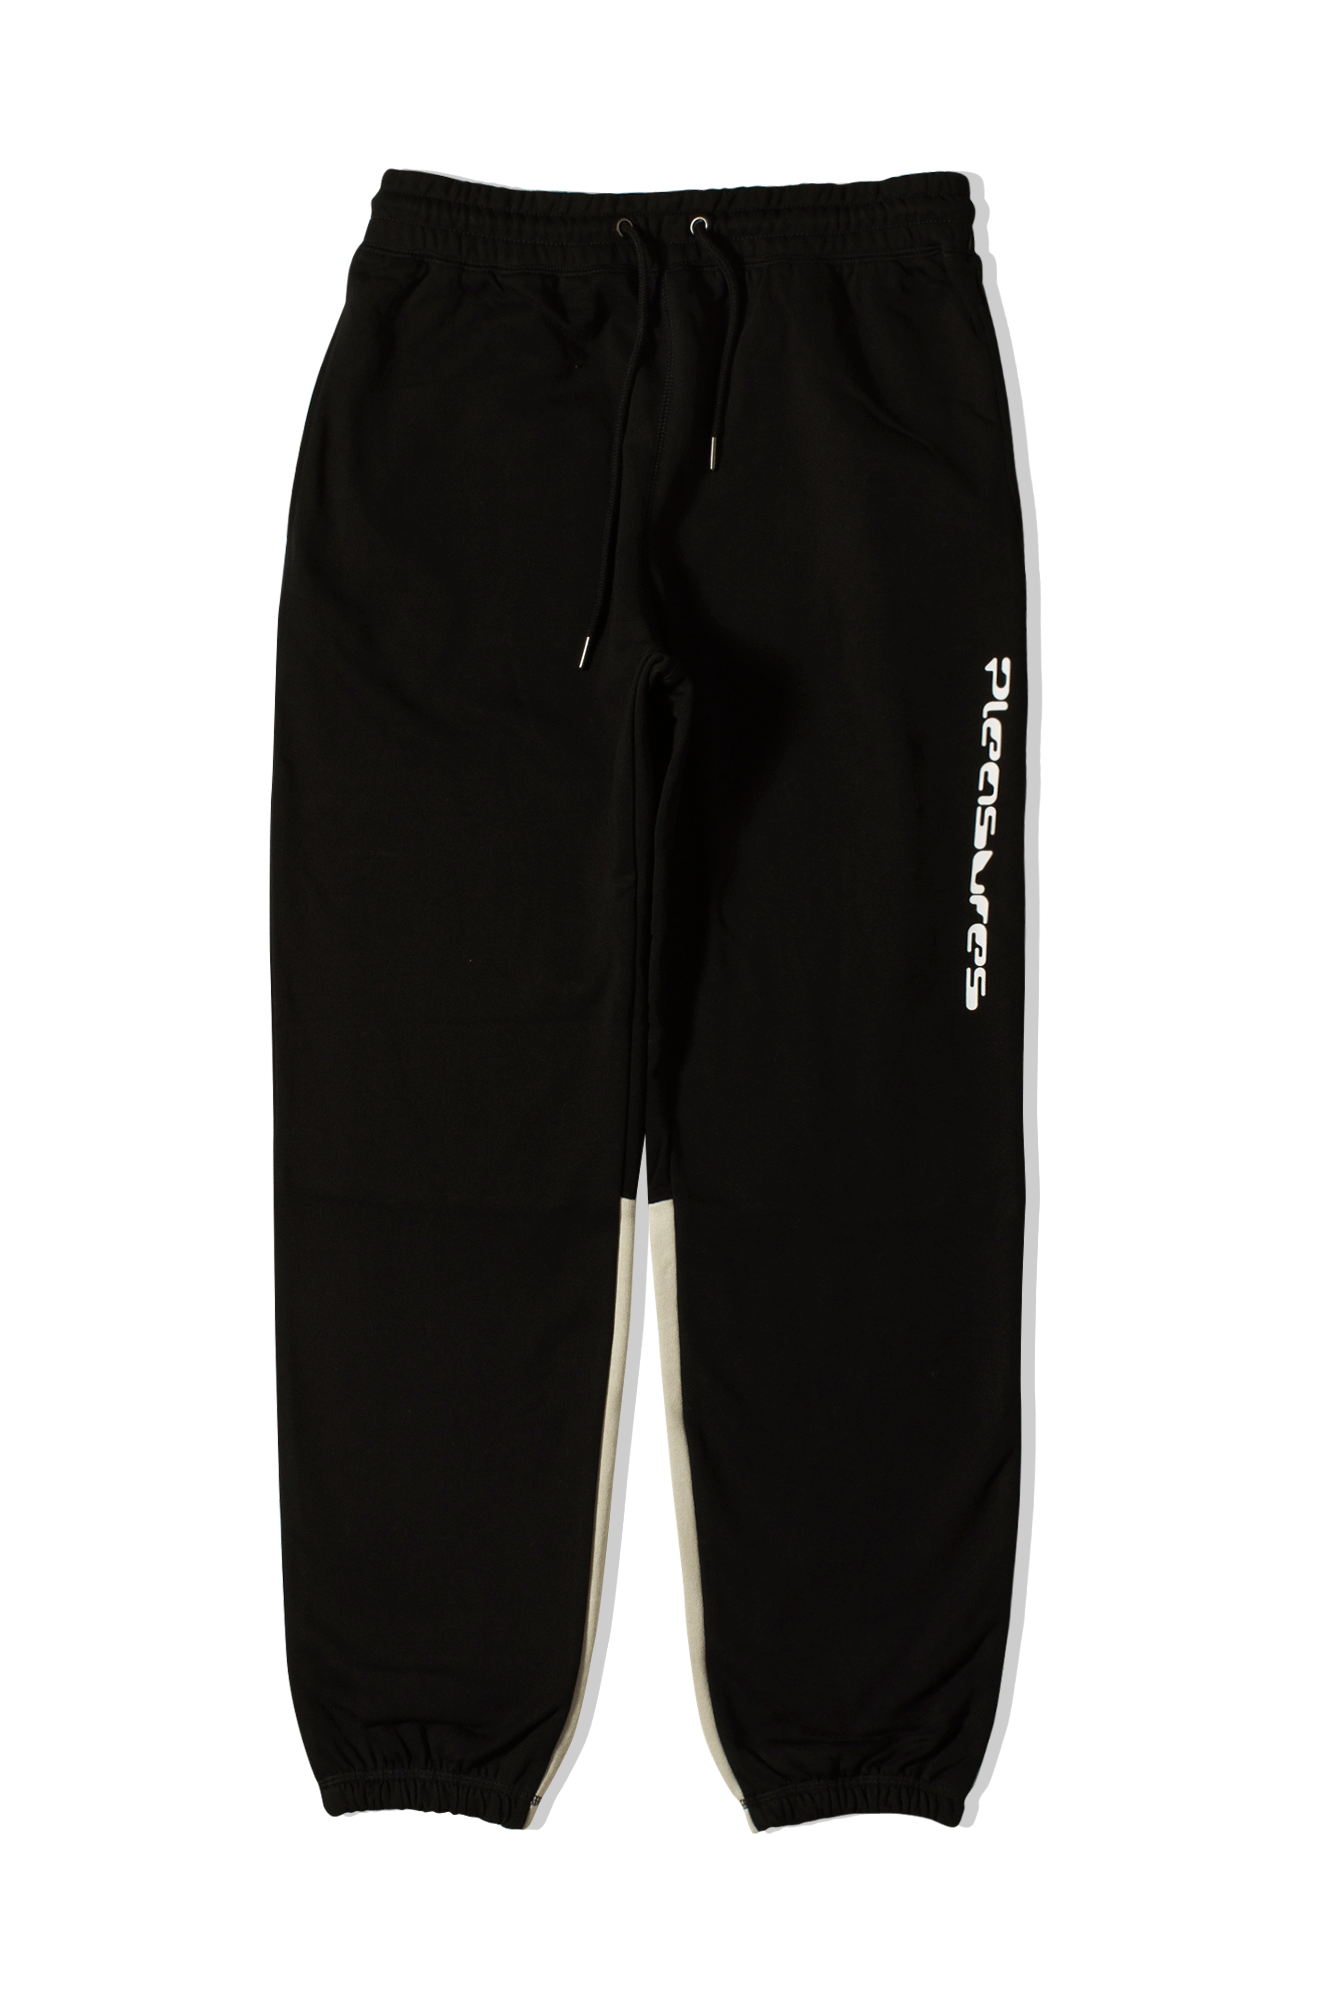 Pleasures Trousers Hard Drive Sweatpants Black P19F104034#000#BLK#S - One Block Down